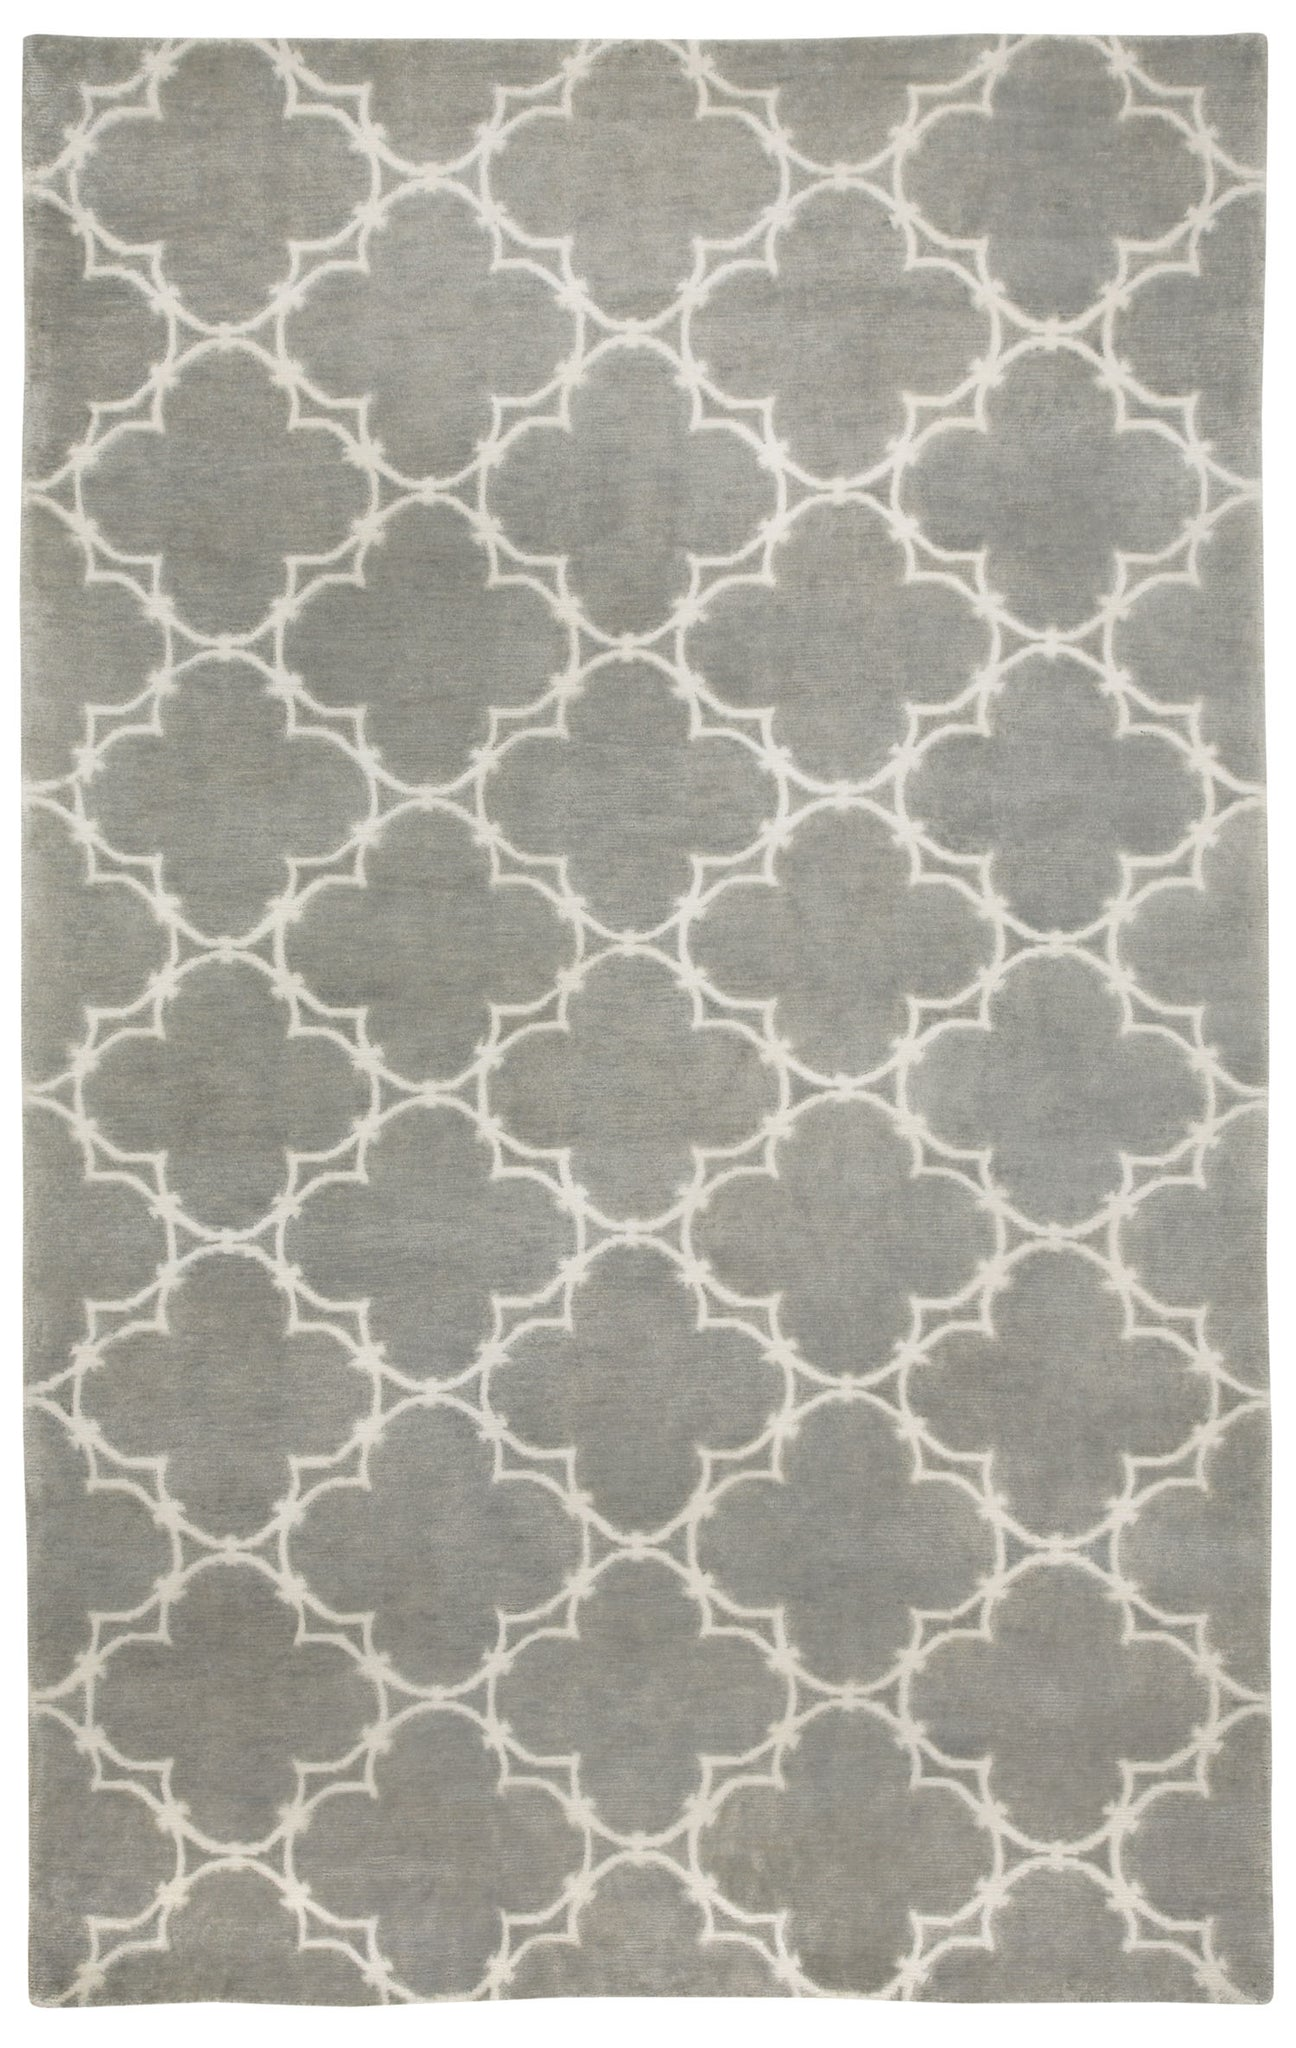 Capel Yale 1931 Light Charcoal Cream 360 Area Rug by COCOCOZY Rugs main image